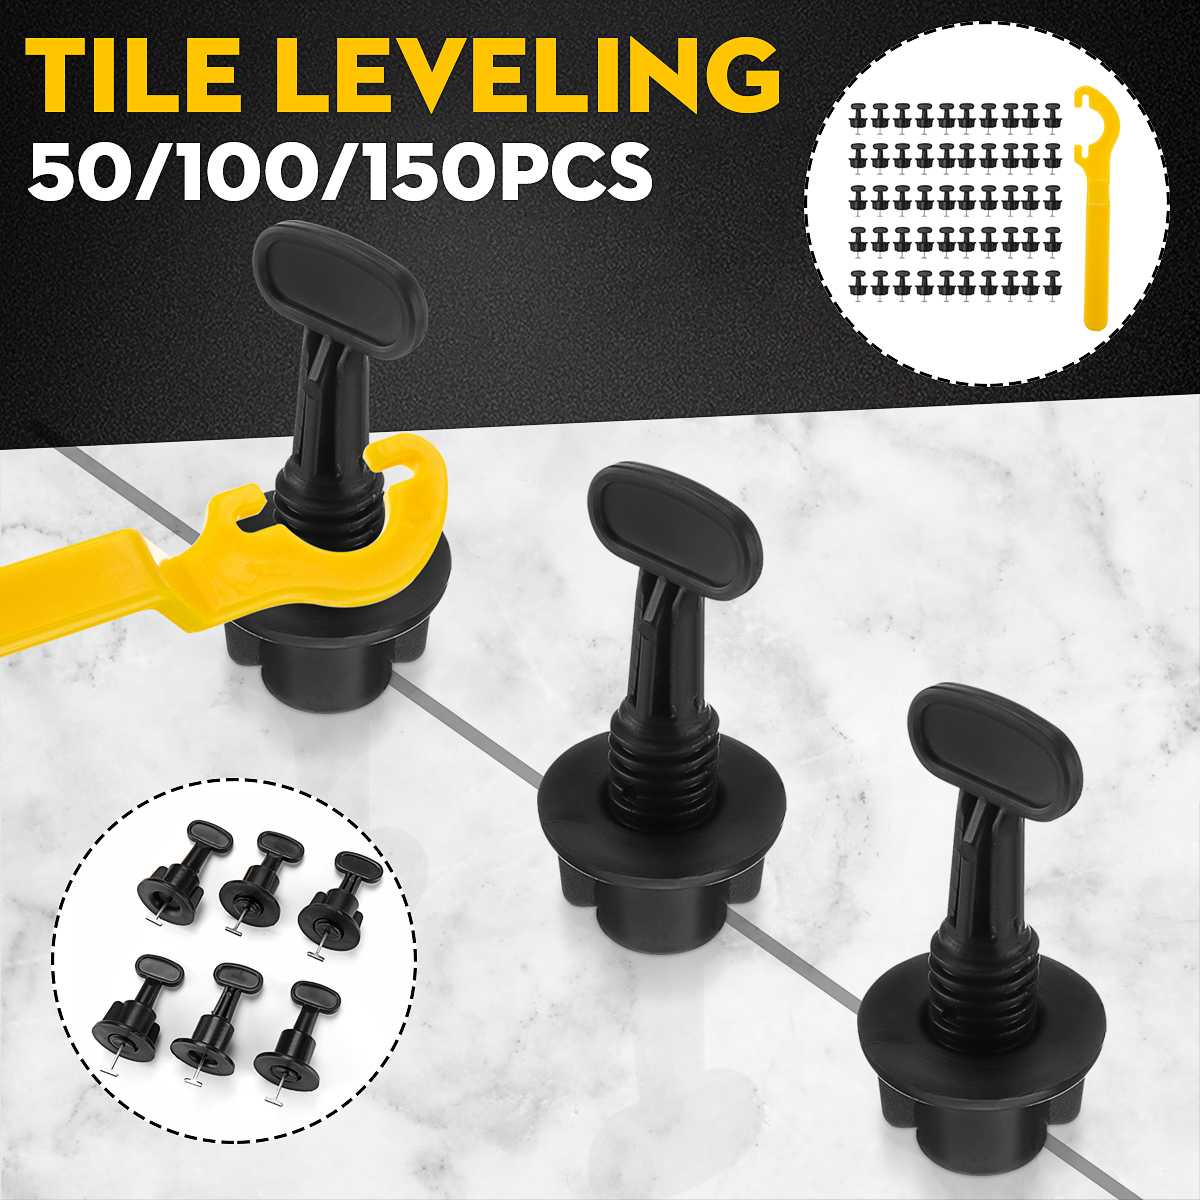 50PCS Tile Levellers Mini Level Wedges Alignment Tile Spacers For Wall Floor Tiles Carrelage Leveling Leveler Locator Spacers